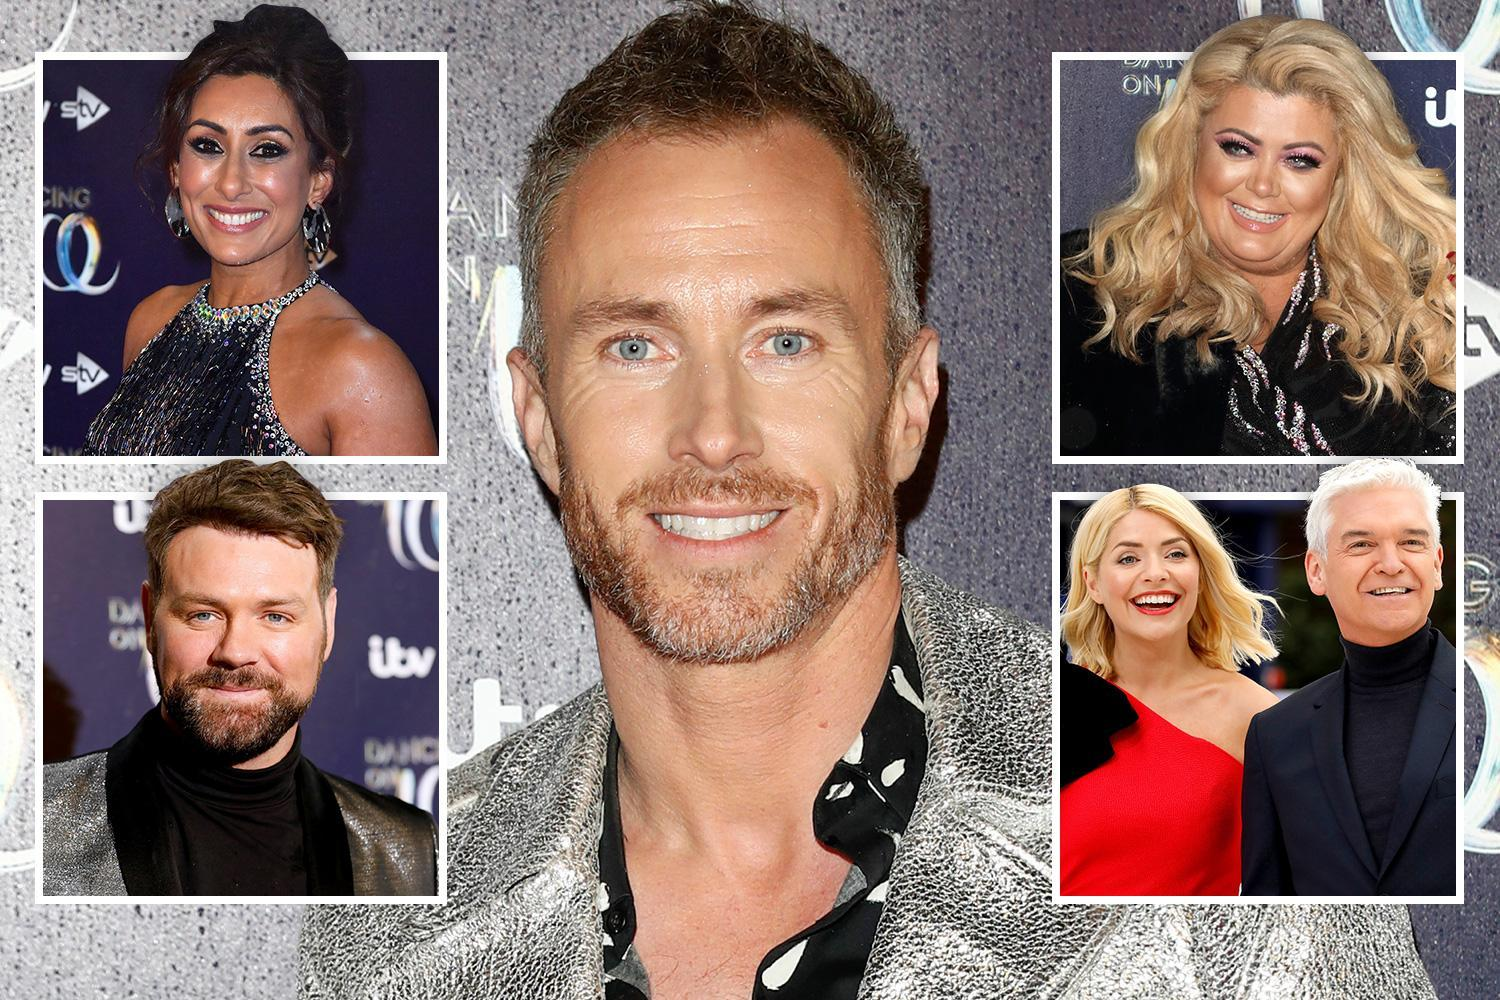 Dancing On Ice's James Jordan launched savage attack on FOUR stars of the show branding them 'bullies' and threatened to 'smash their faces in'